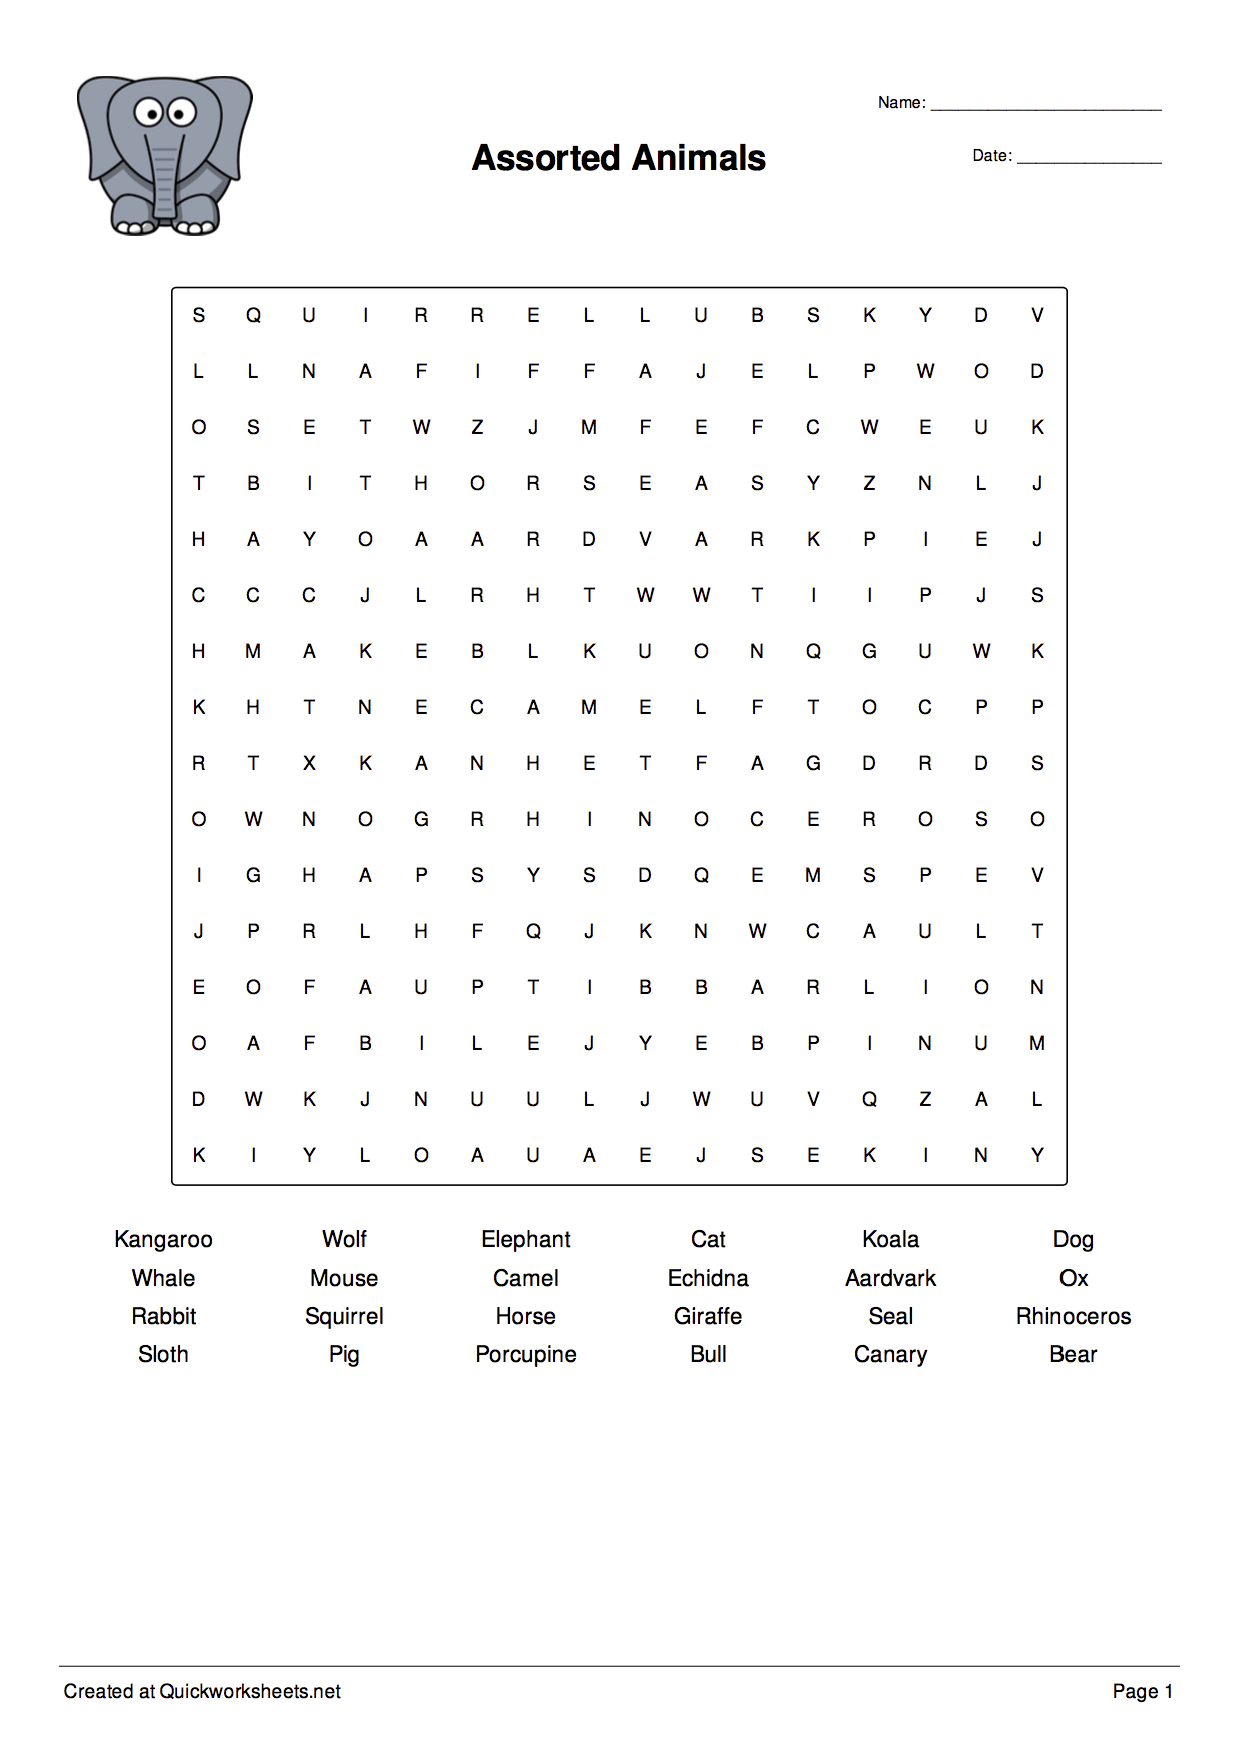 Word Scramble, Wordsearch, Crossword, Matching Pairs And Other - Free Word Scramble Maker Printable